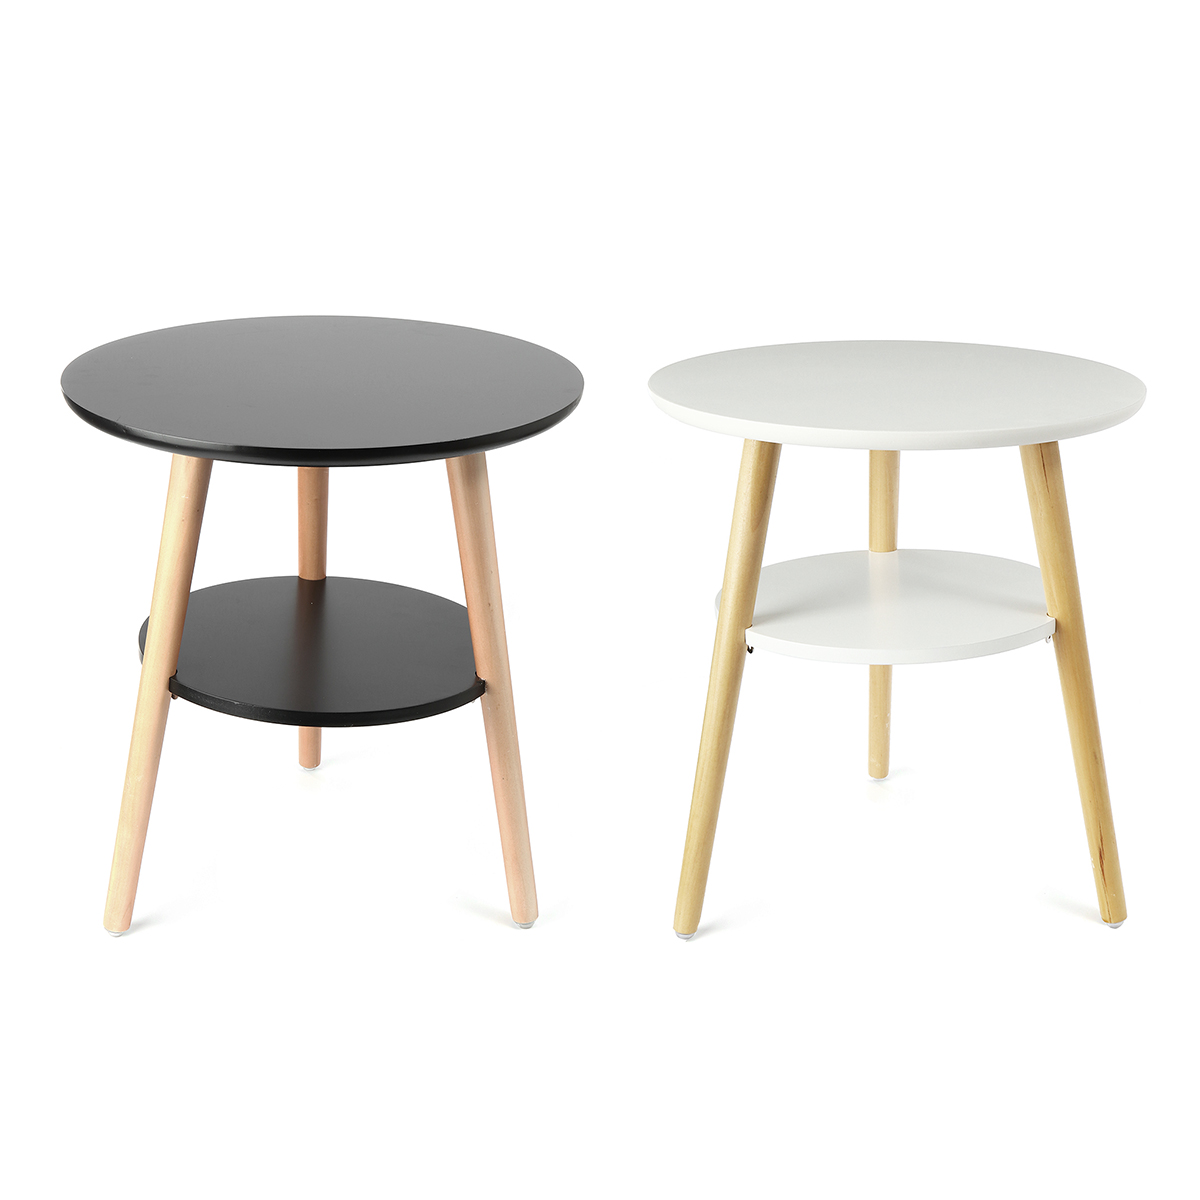 Nordic Modern Wood Coffee Table Convenient Sofa Round Double Side Practical Natural Tea Side Table Living Room Bed Decoration